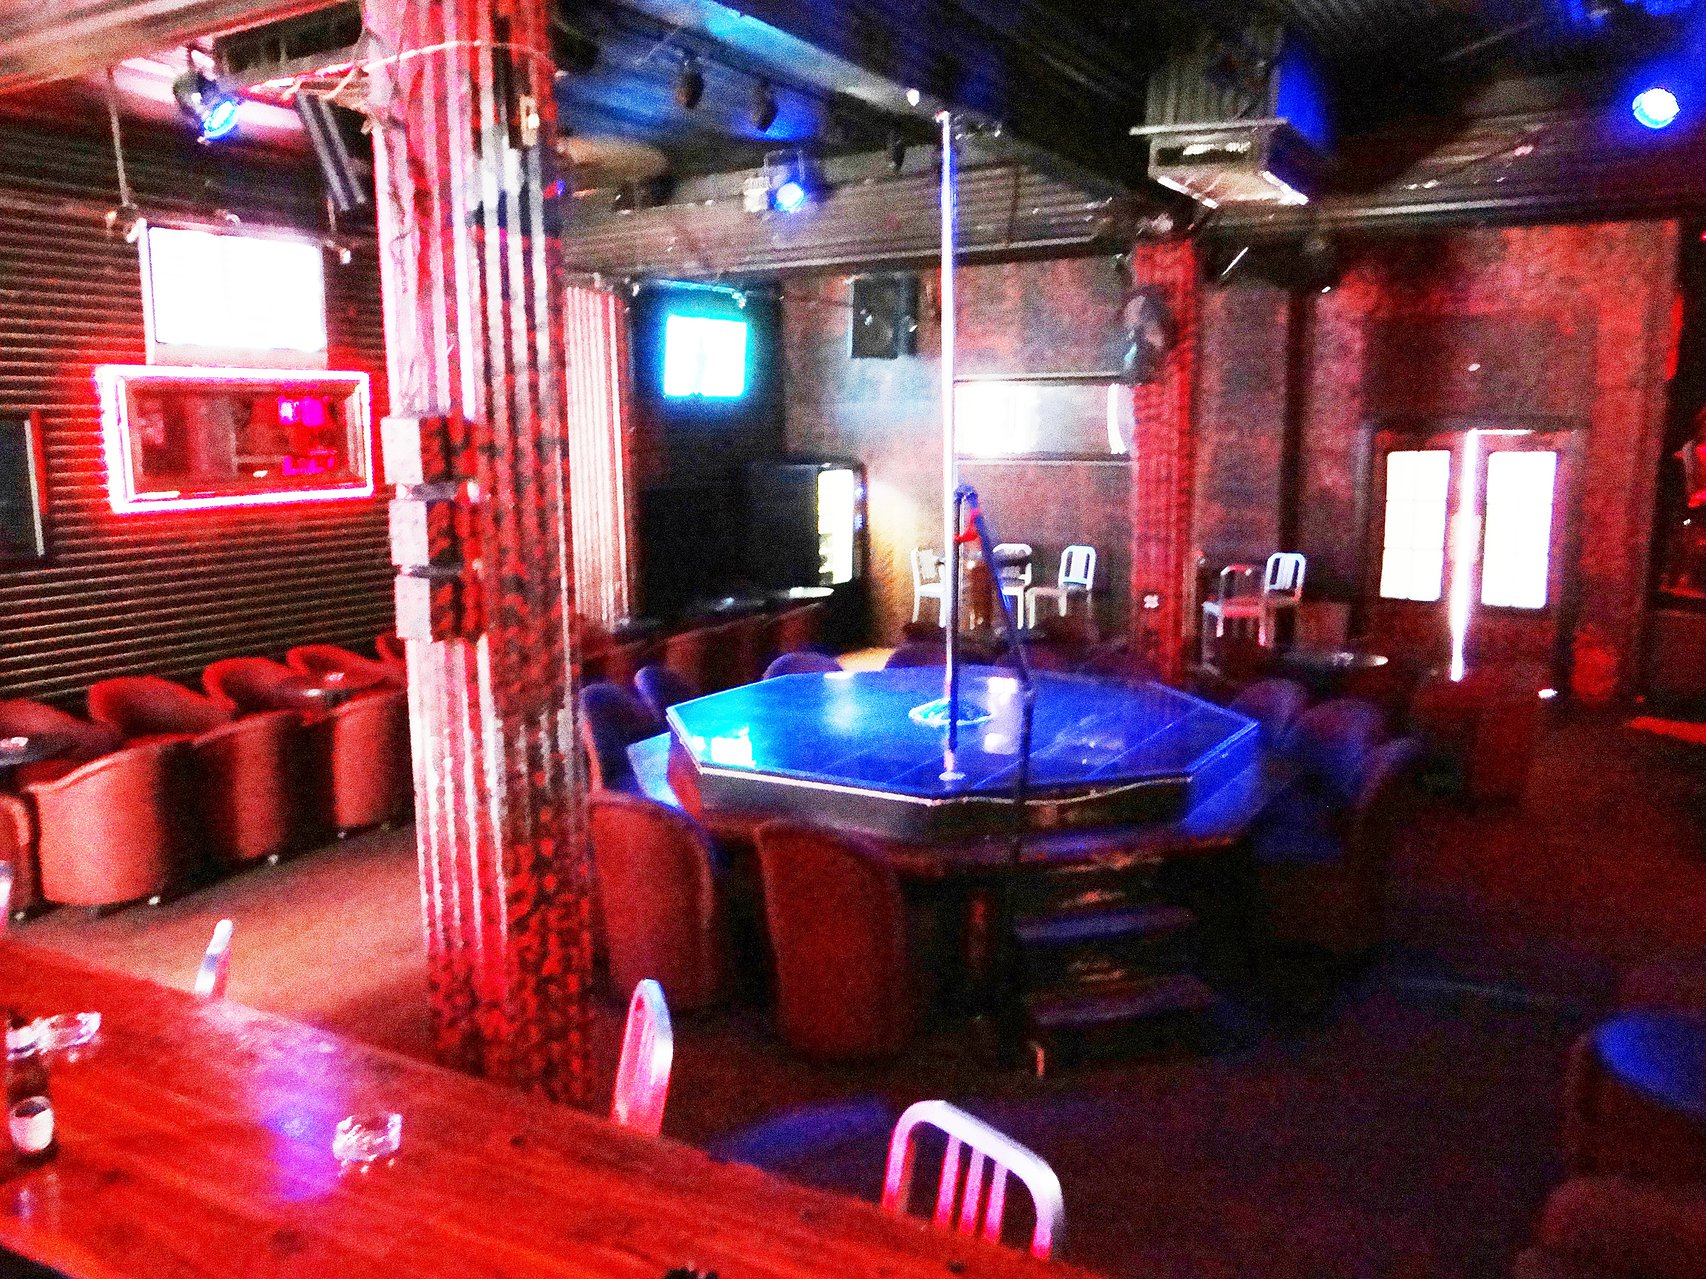 New Orleans Strip Club - The Penthouse Club, New Orleans